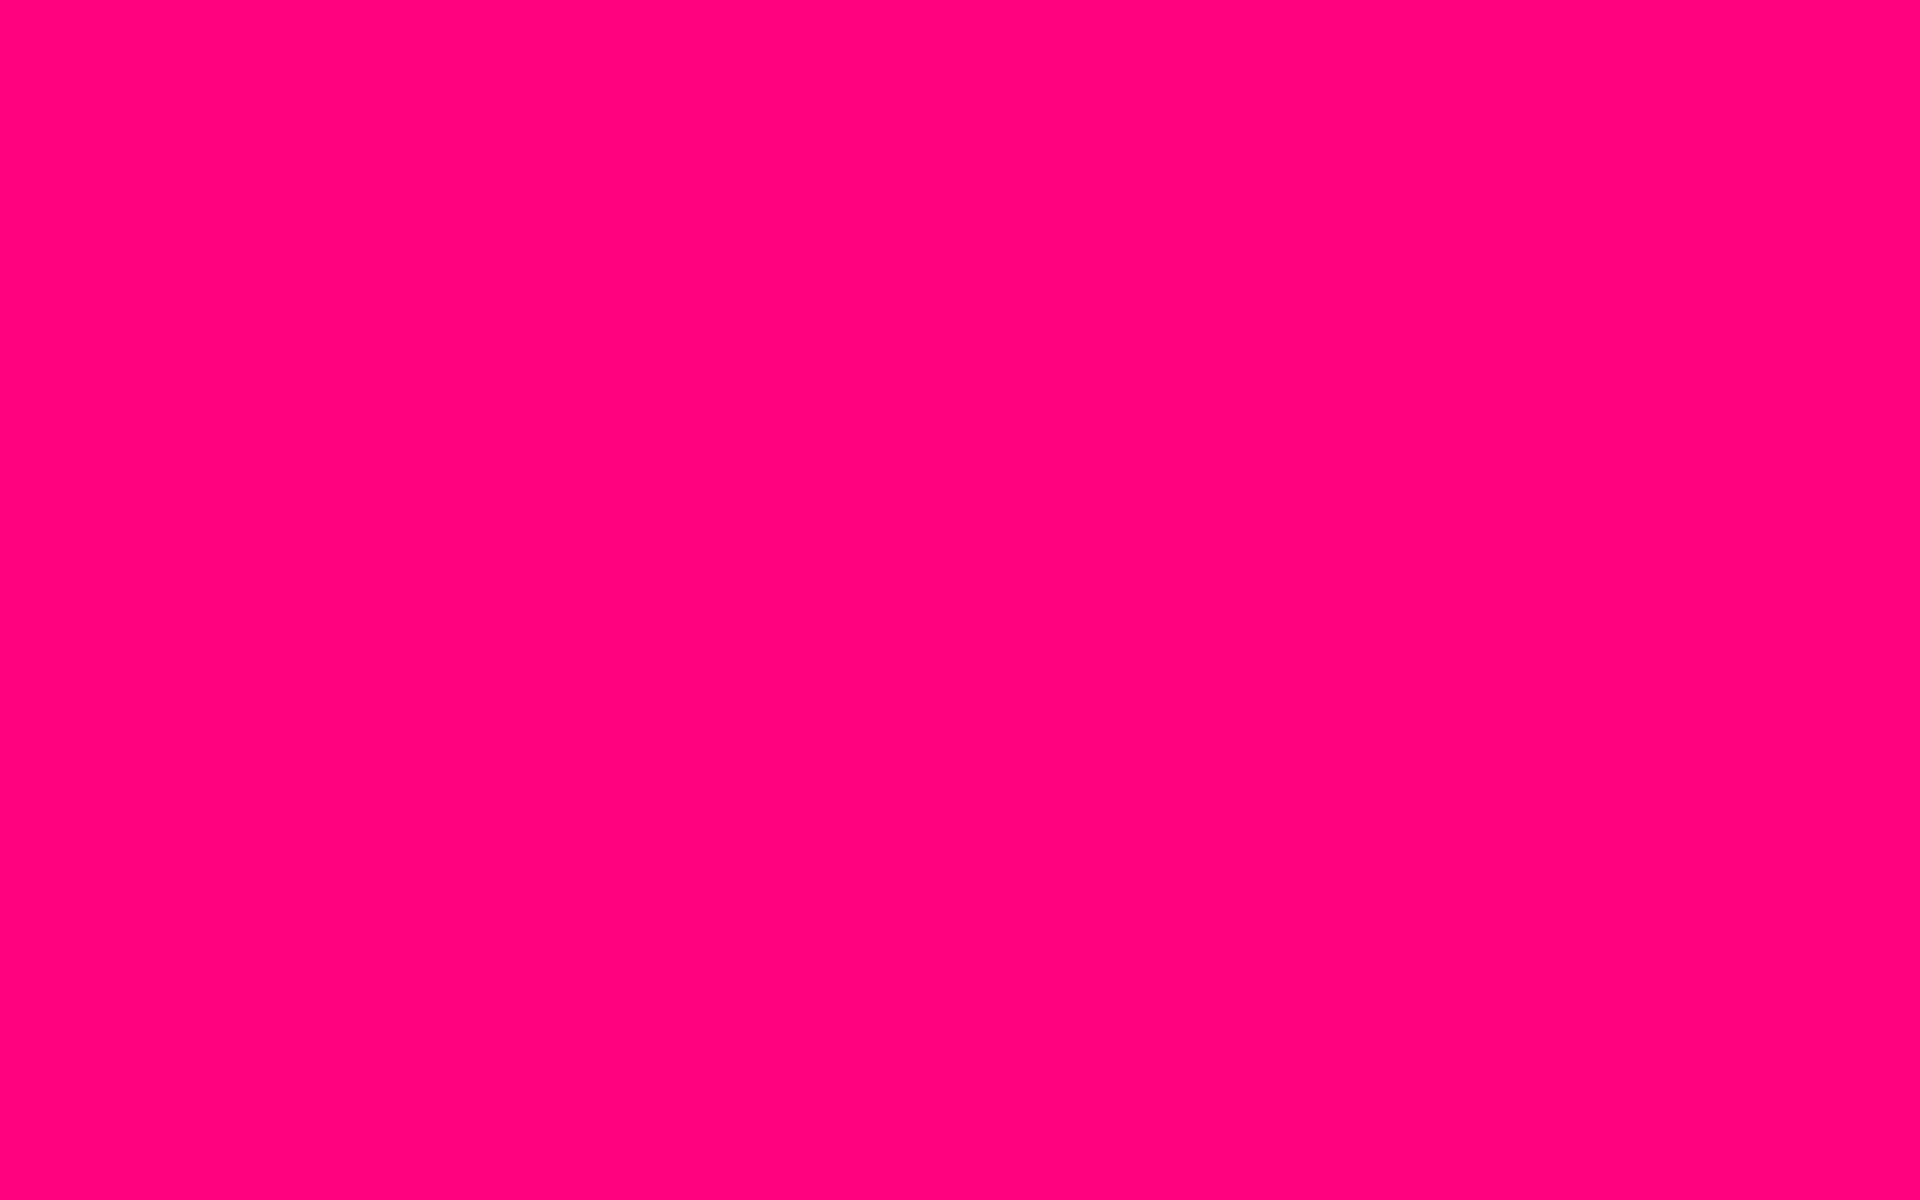 1920x1200 Bright Pink Solid Color Background